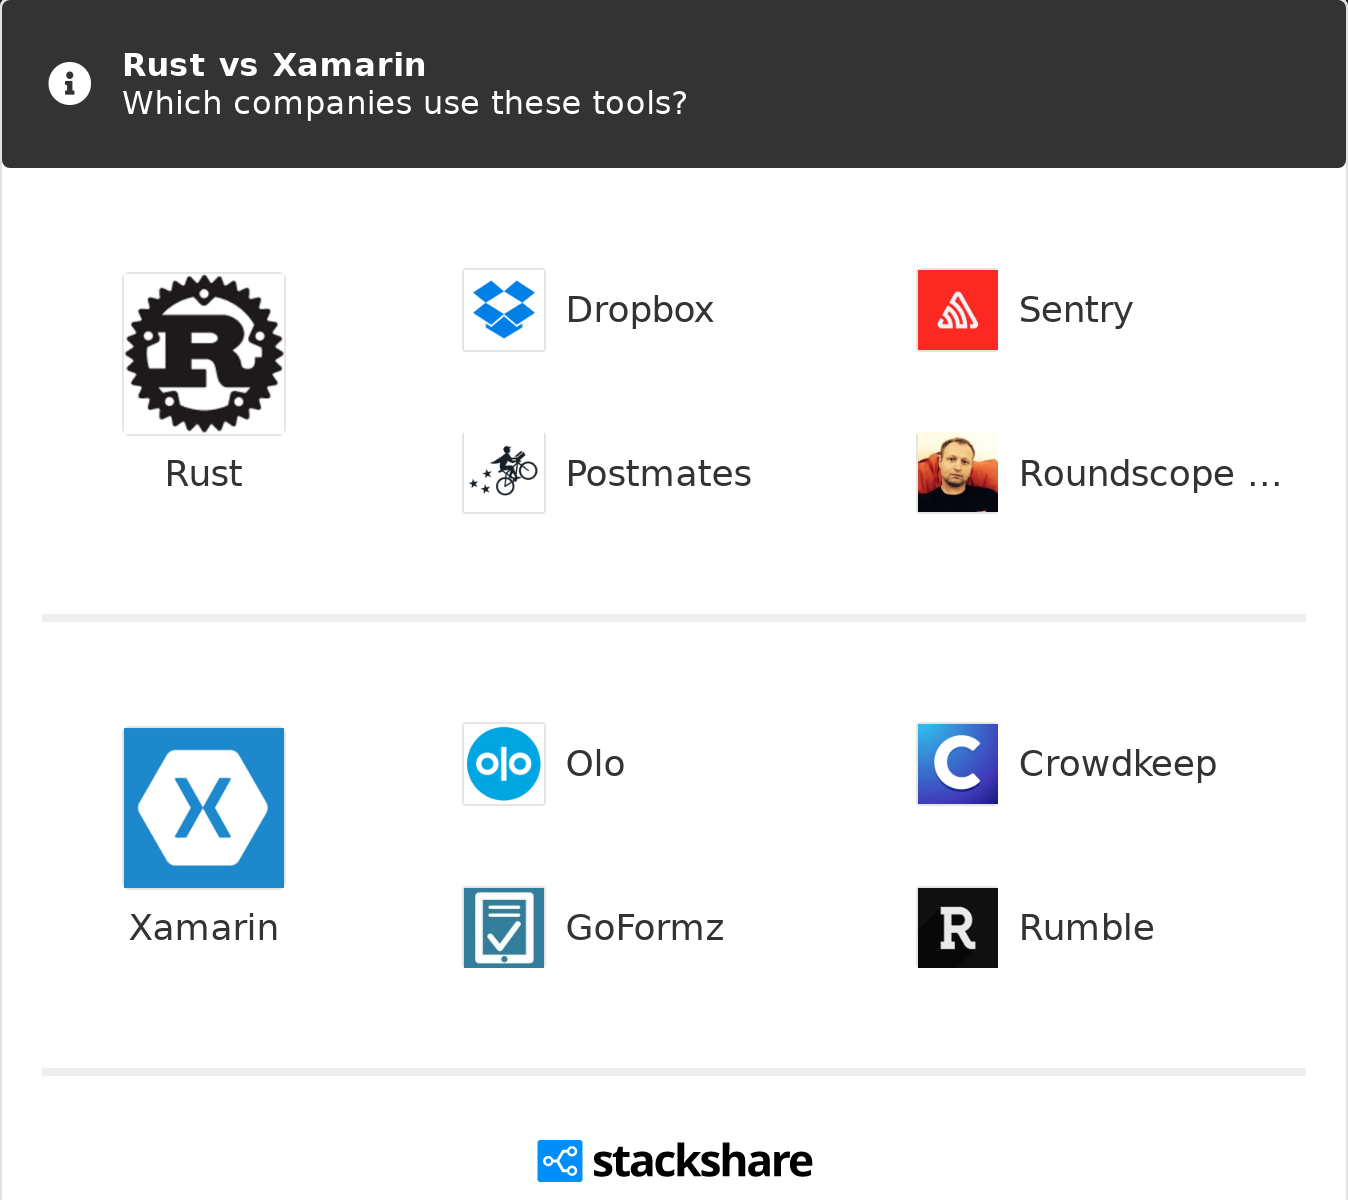 Rust vs Xamarin   What are the differences?